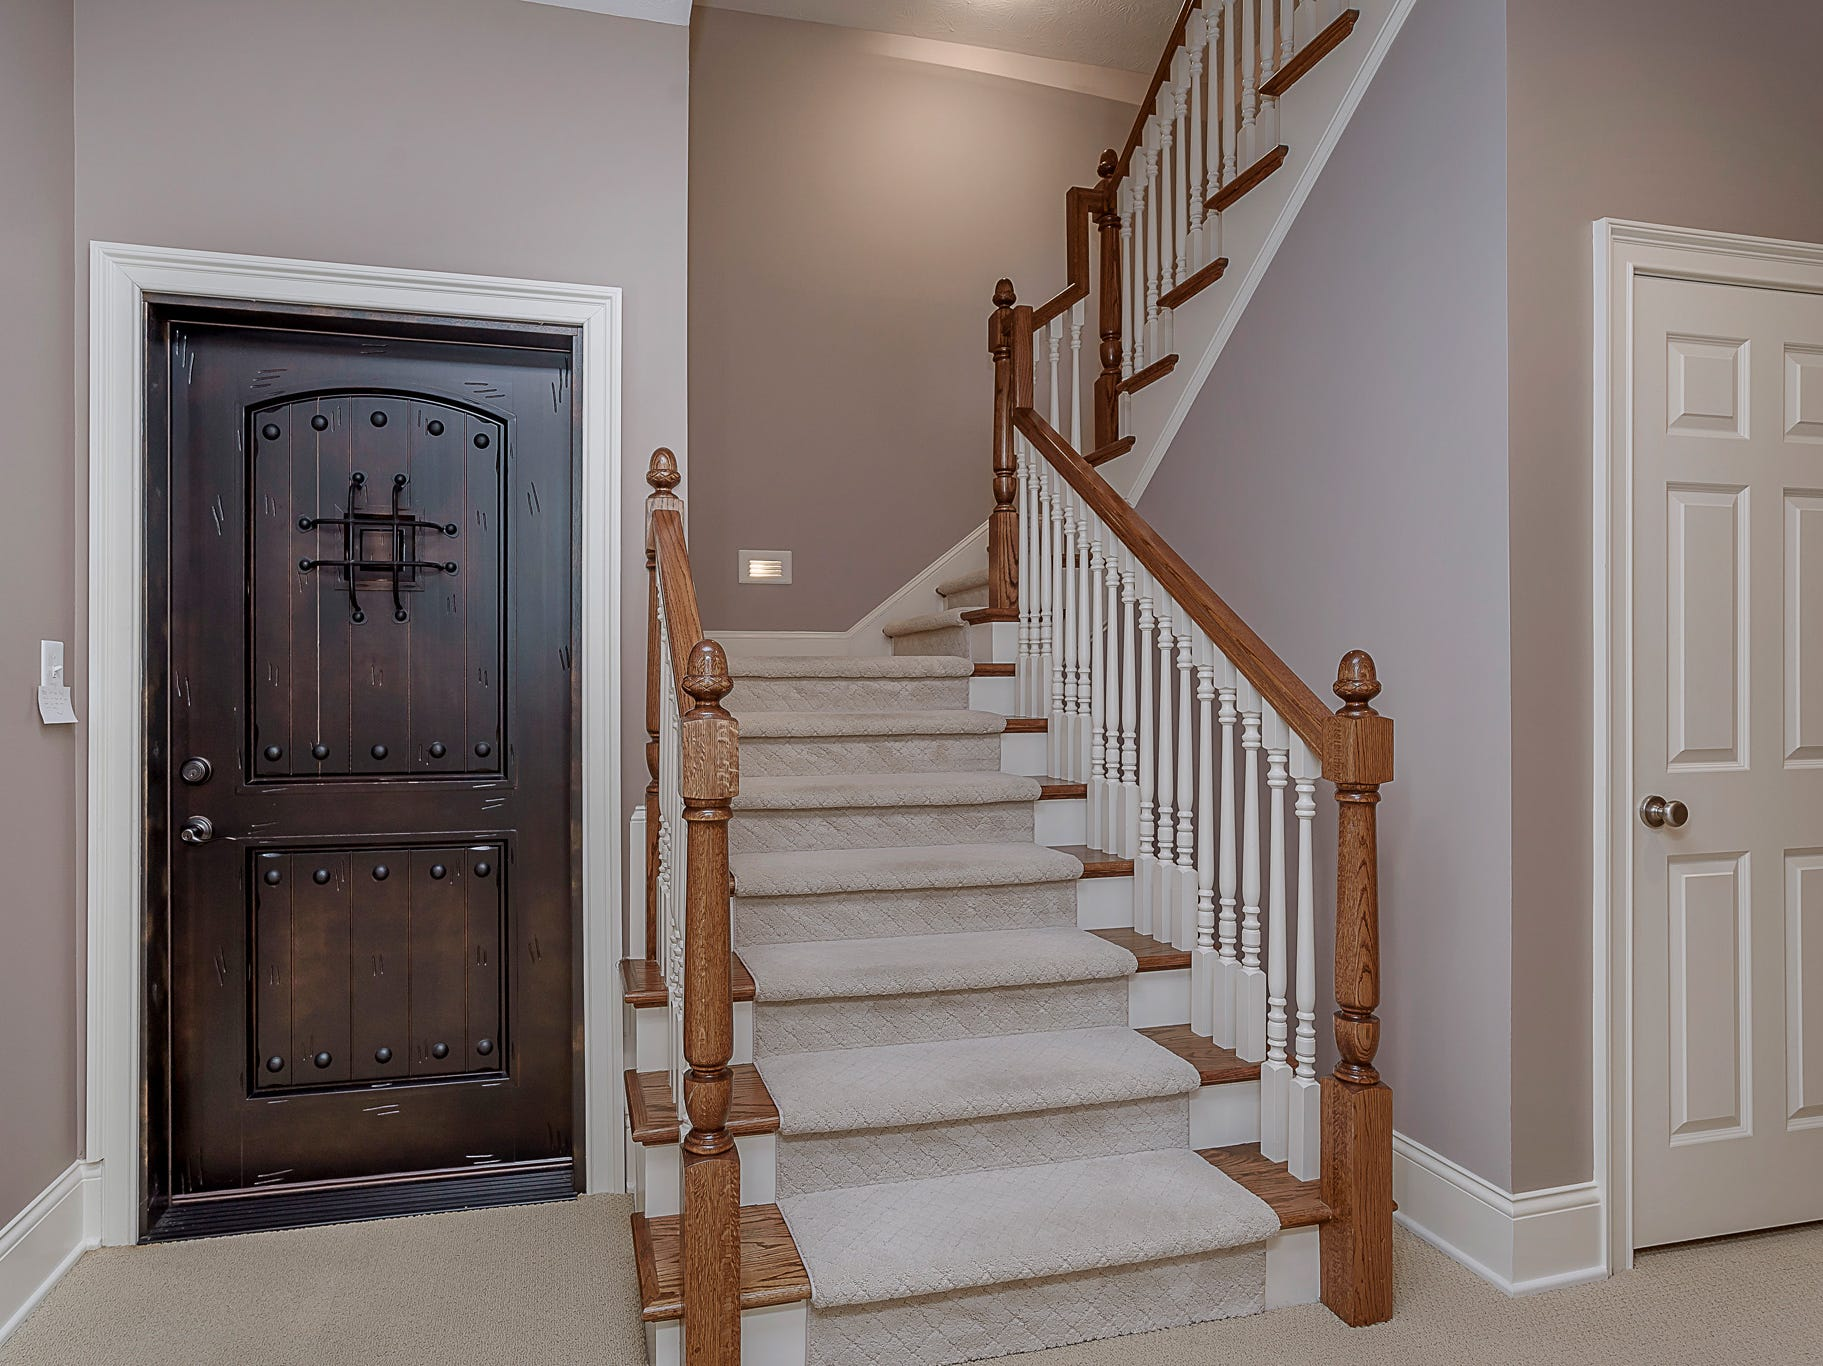 Staircase leading to the basement with view of door to wine cellar.